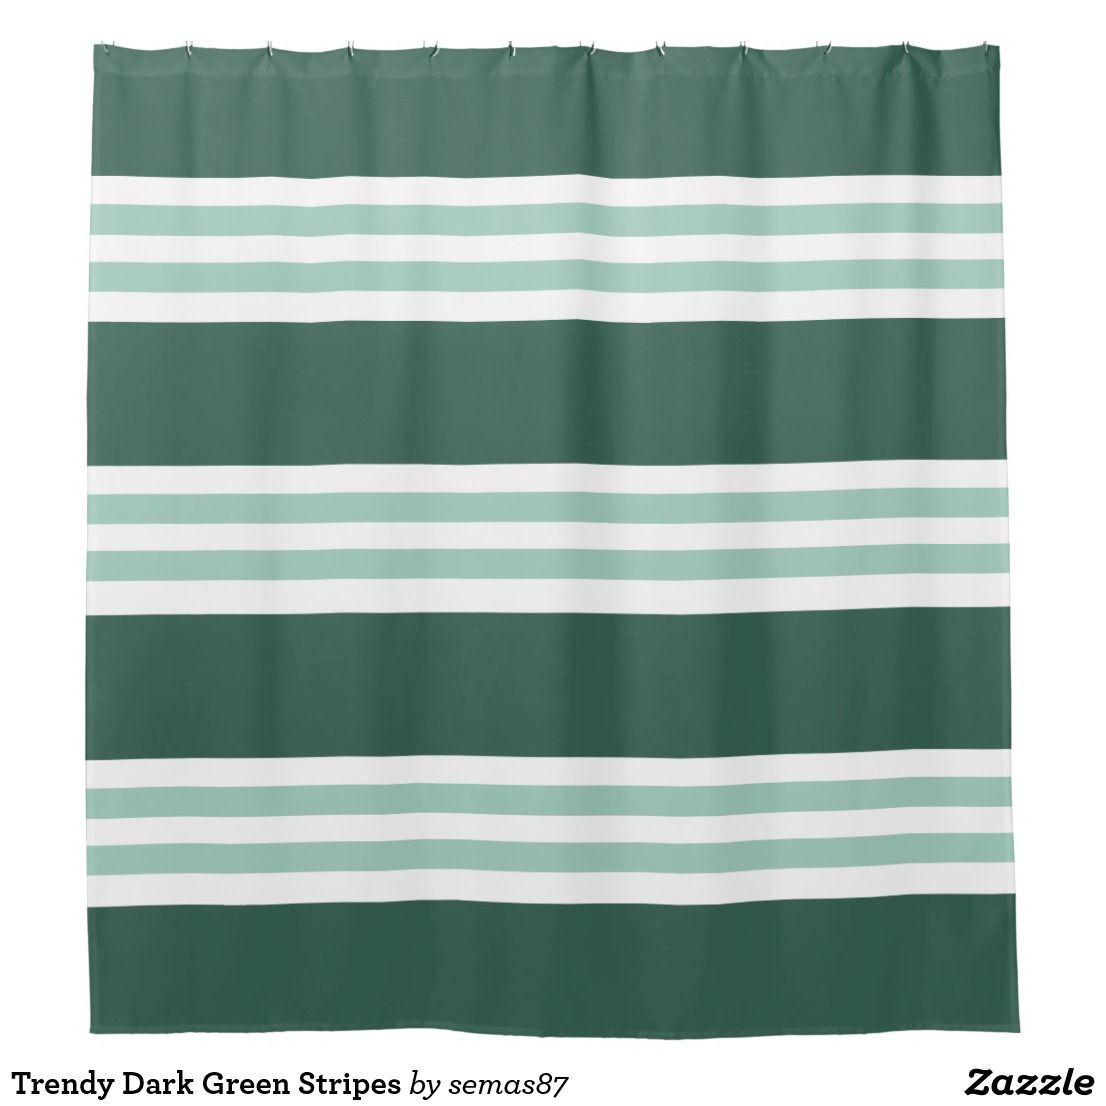 Trendy Dark Green Stripes Shower Curtain Zazzle Com Striped